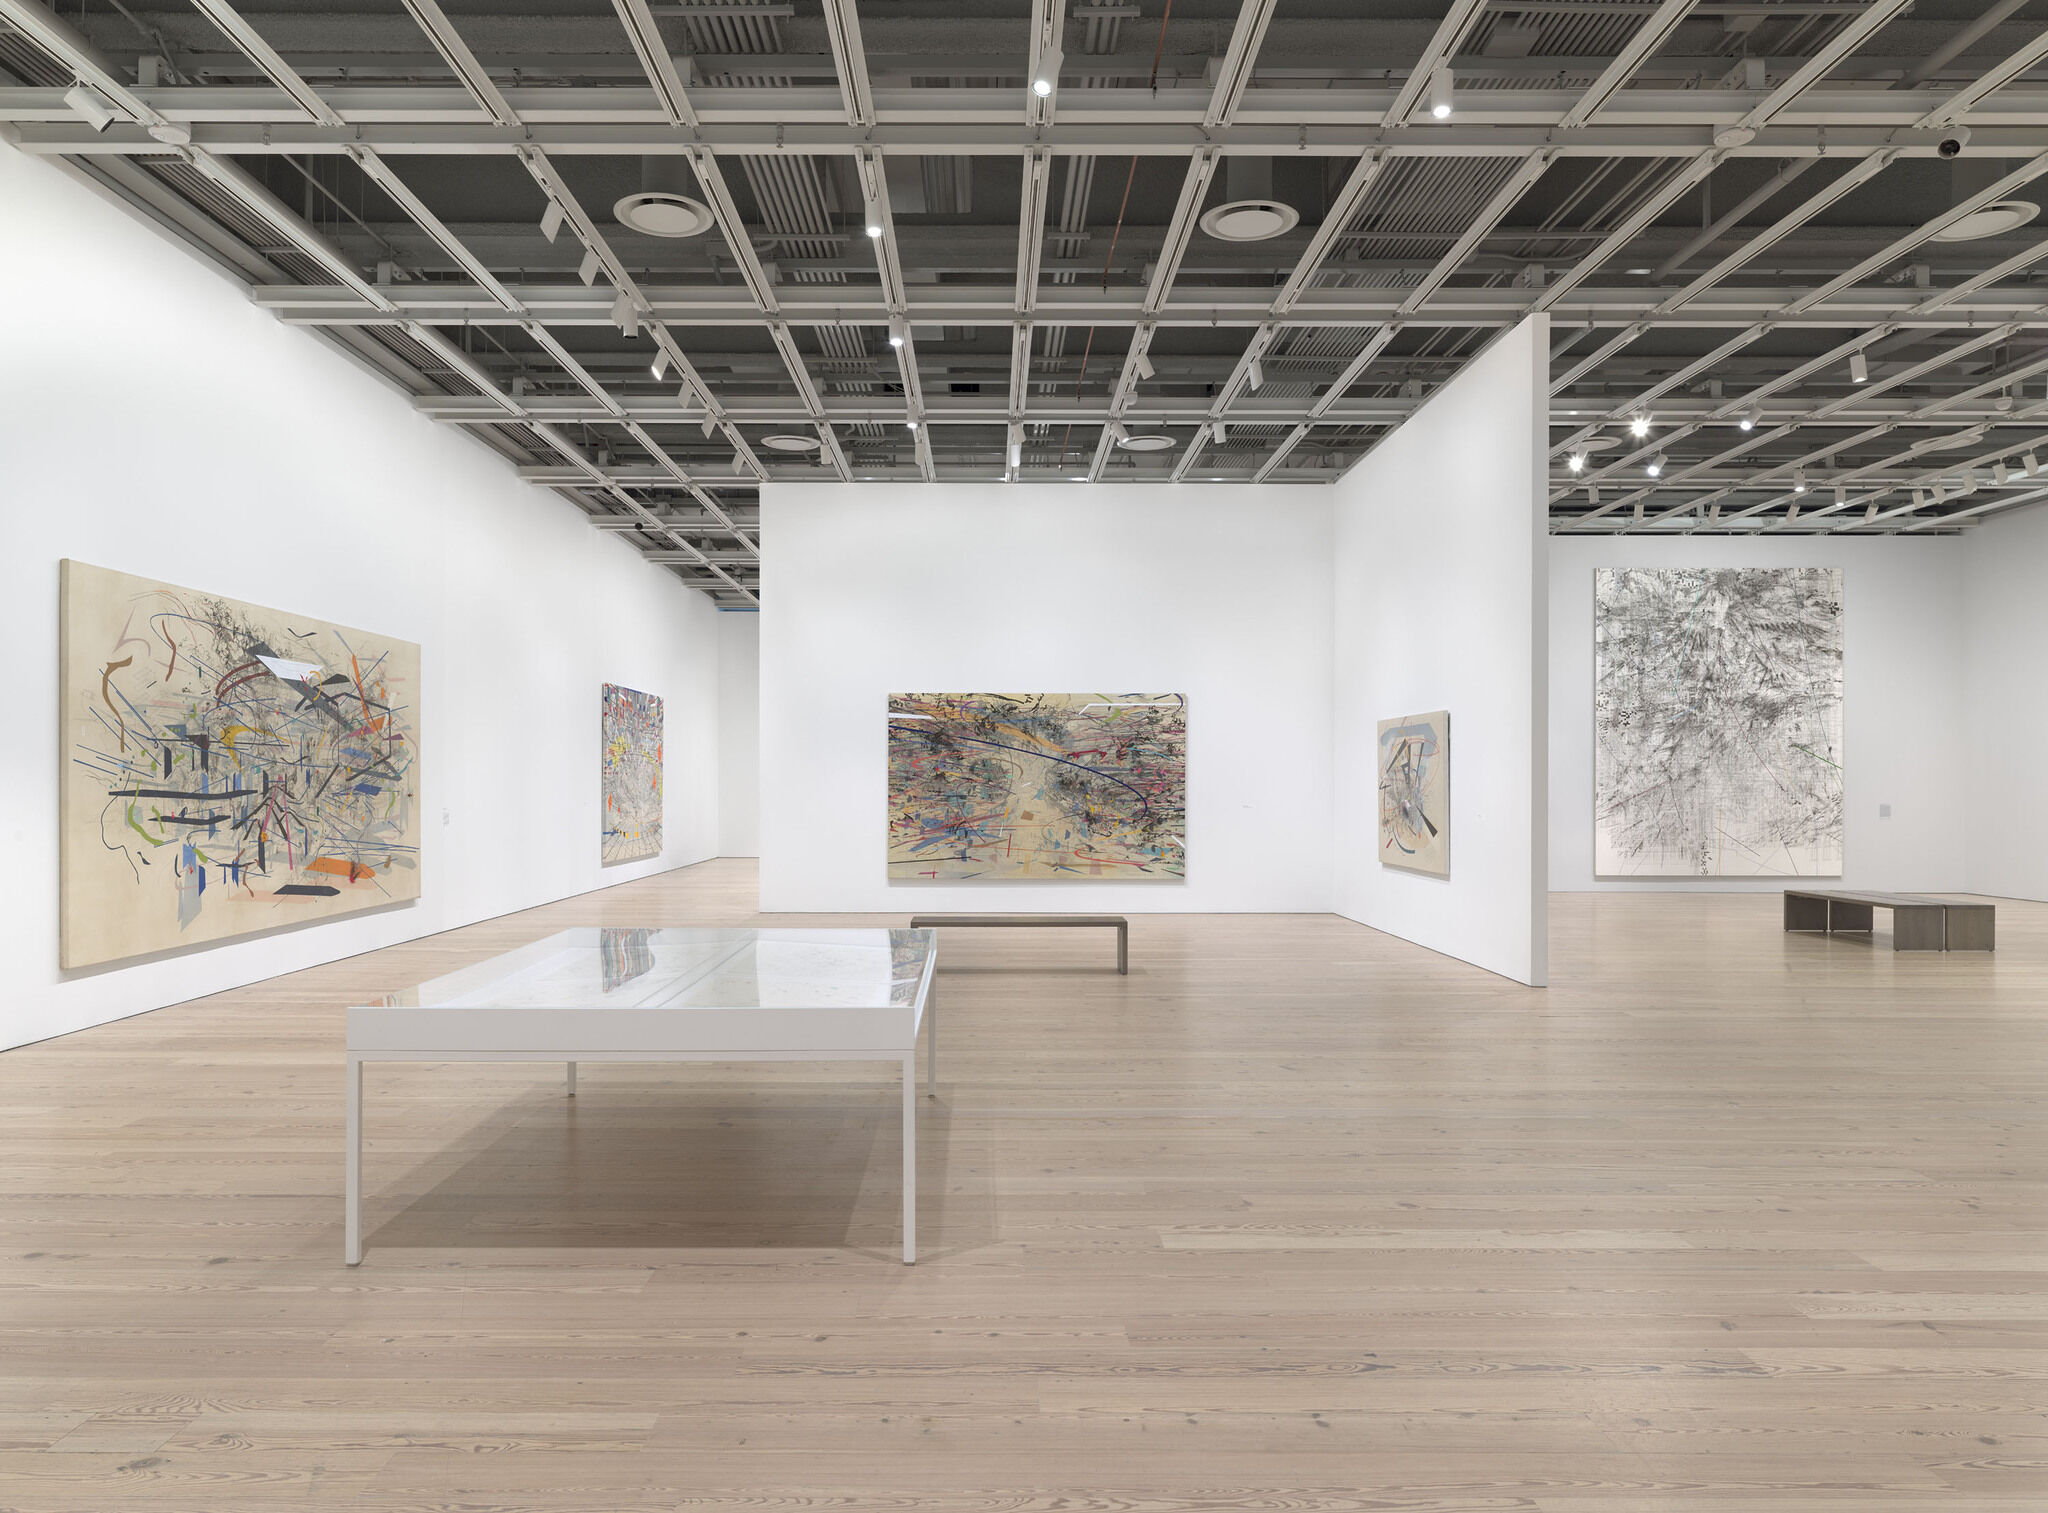 A main exhibition room of the Whitney with five pieces mounted on the walls across the space.